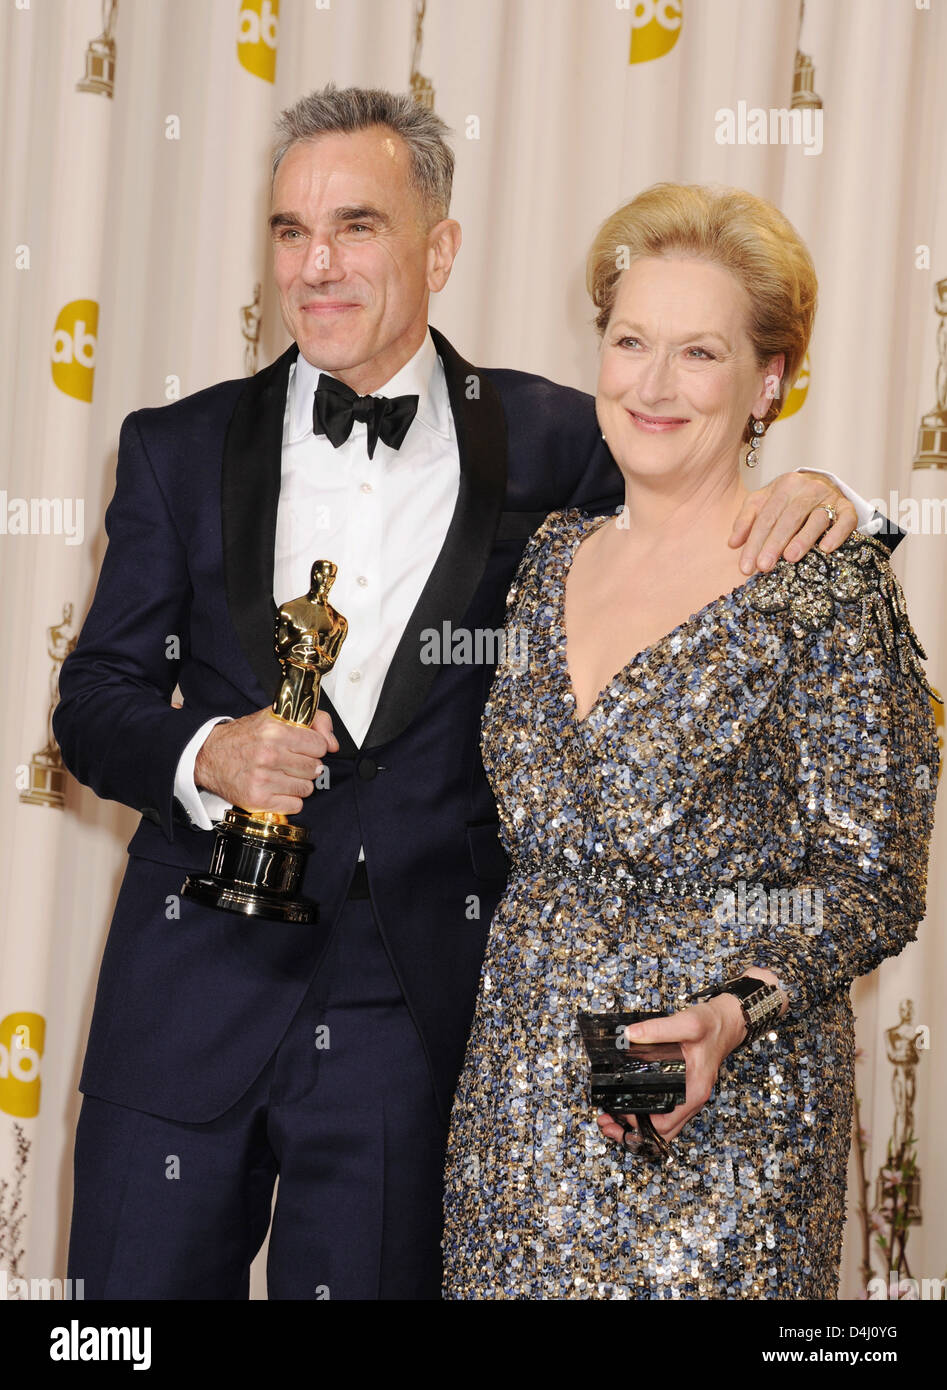 DANIEL DAY-LEWIS holding his Oscar and Meryl Streep at 85th Academy Awards in Los Angeles in February 2013. Photo - Stock Image